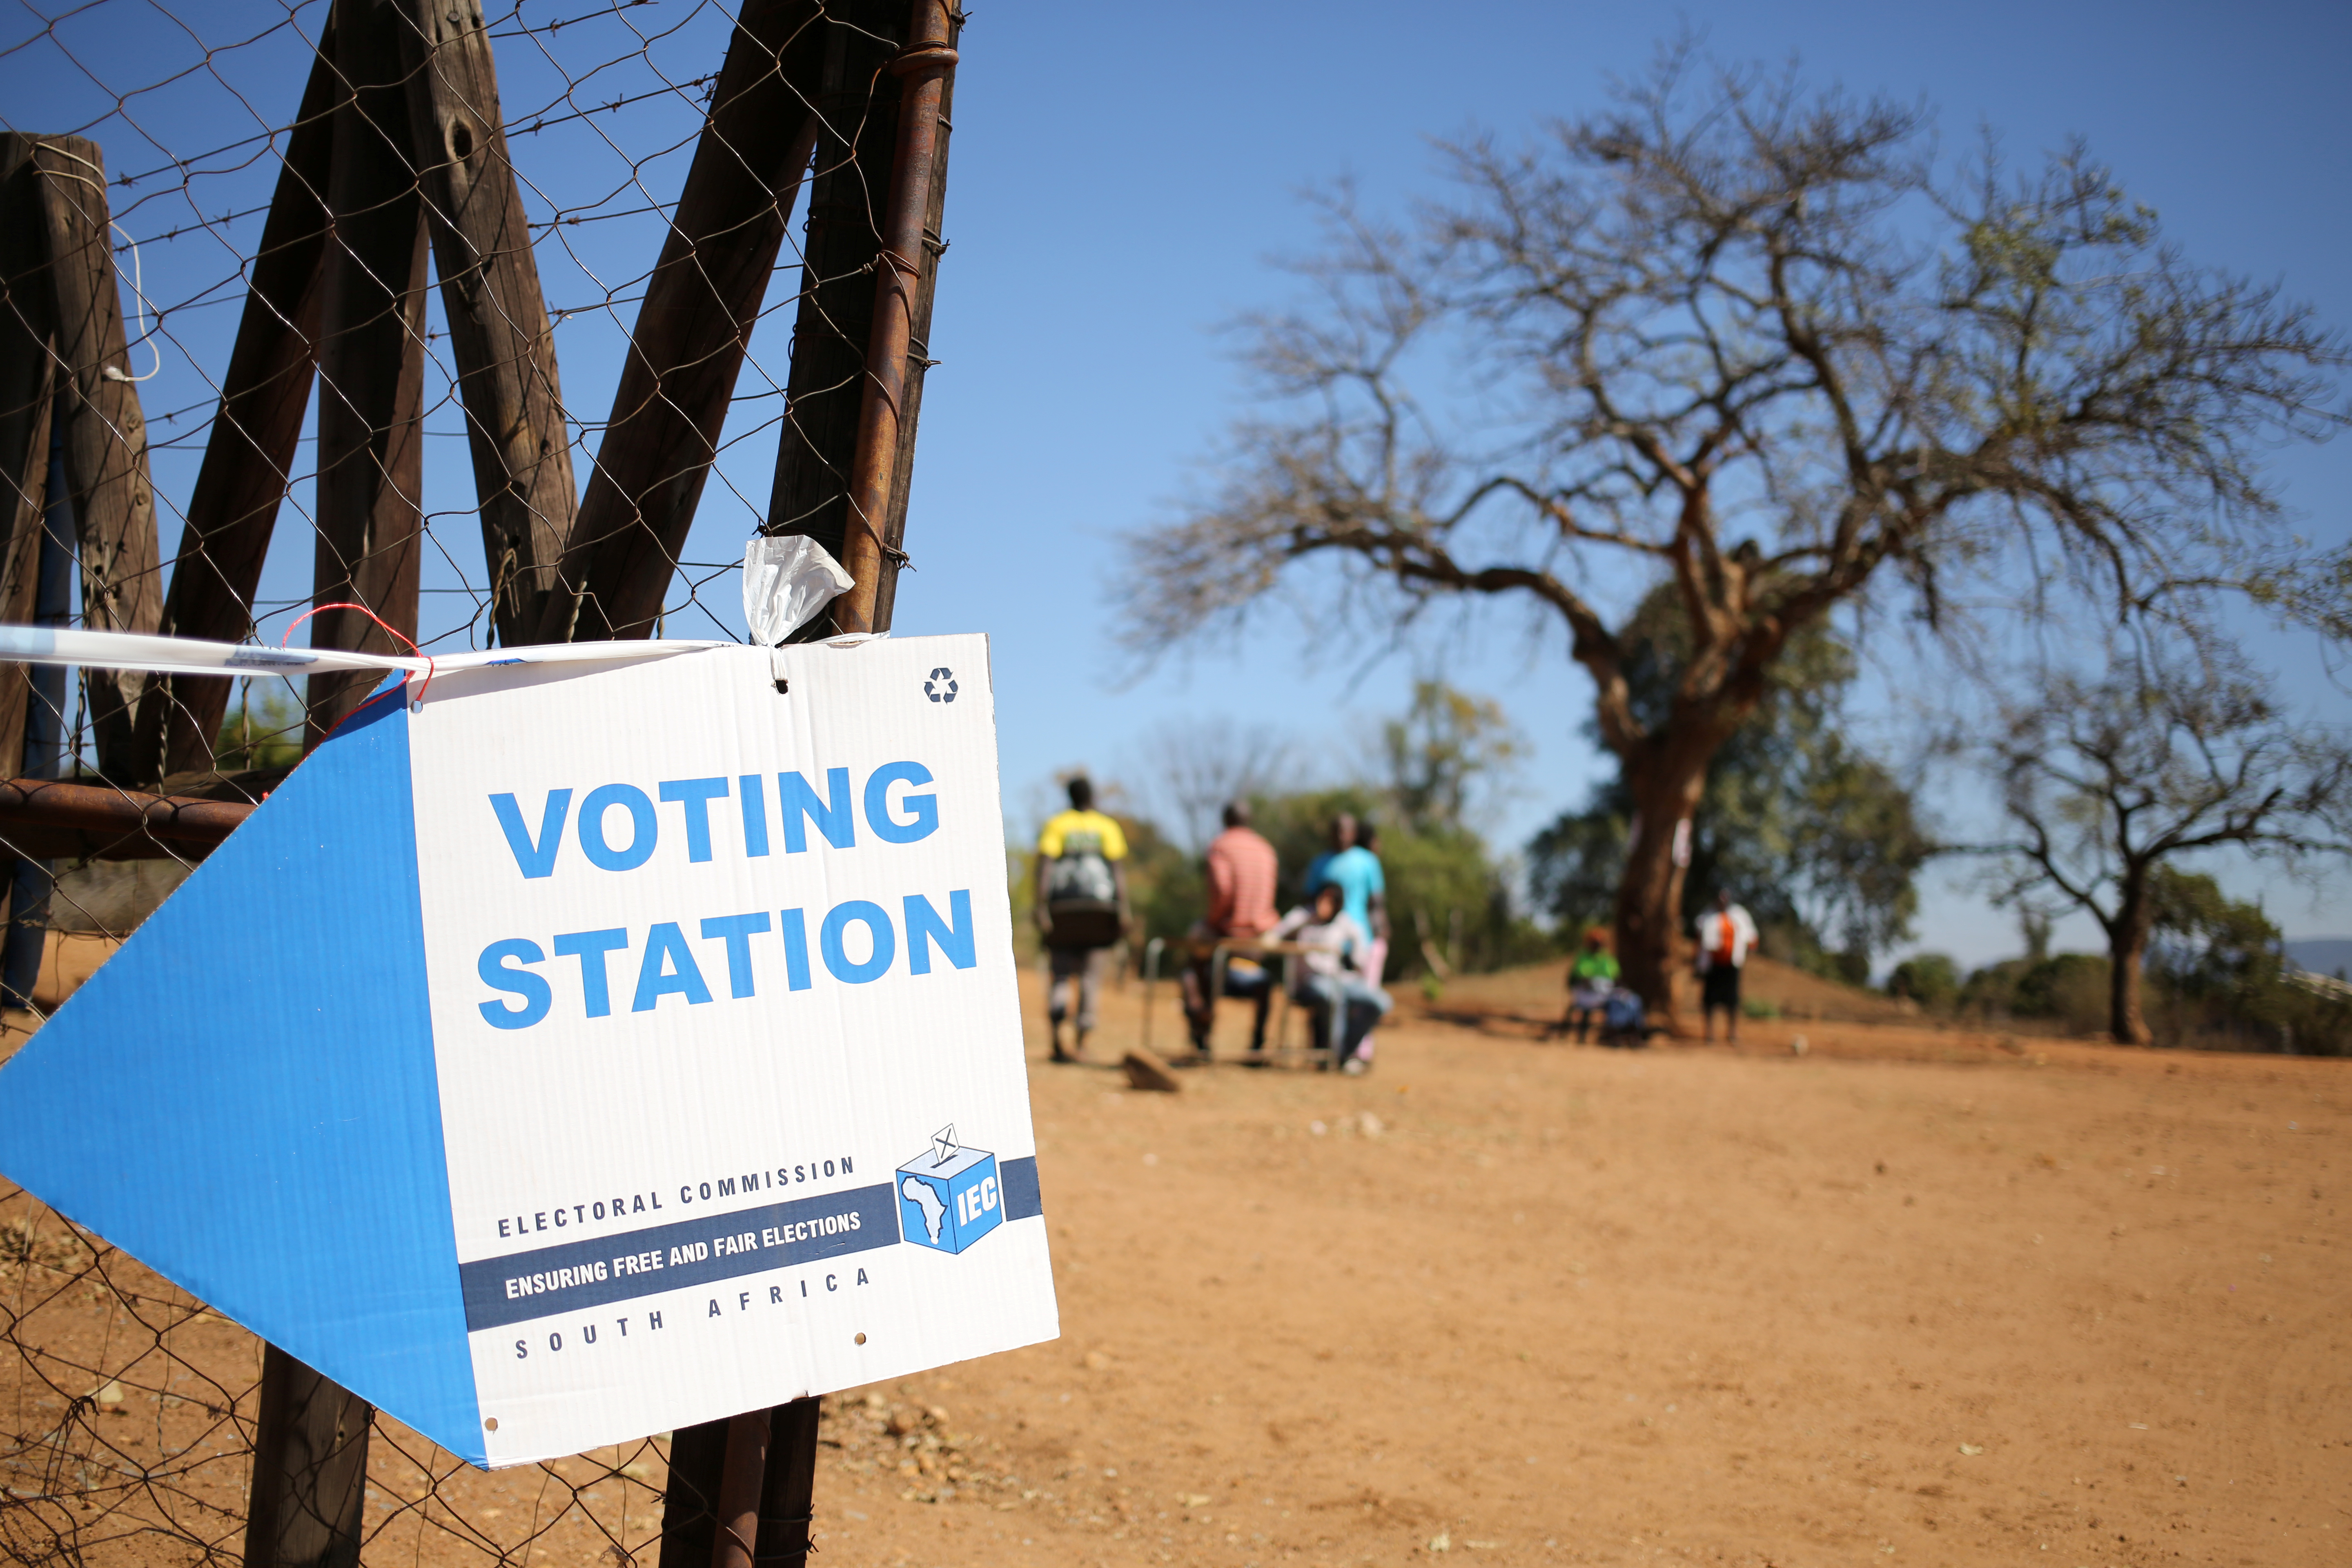 Locals are seen outside a polling station during tense local munincipal elections in Vuwani, South Africa's northern Limpopo province, August 3, 2016. REUTERS/Siphiwe Sibeko